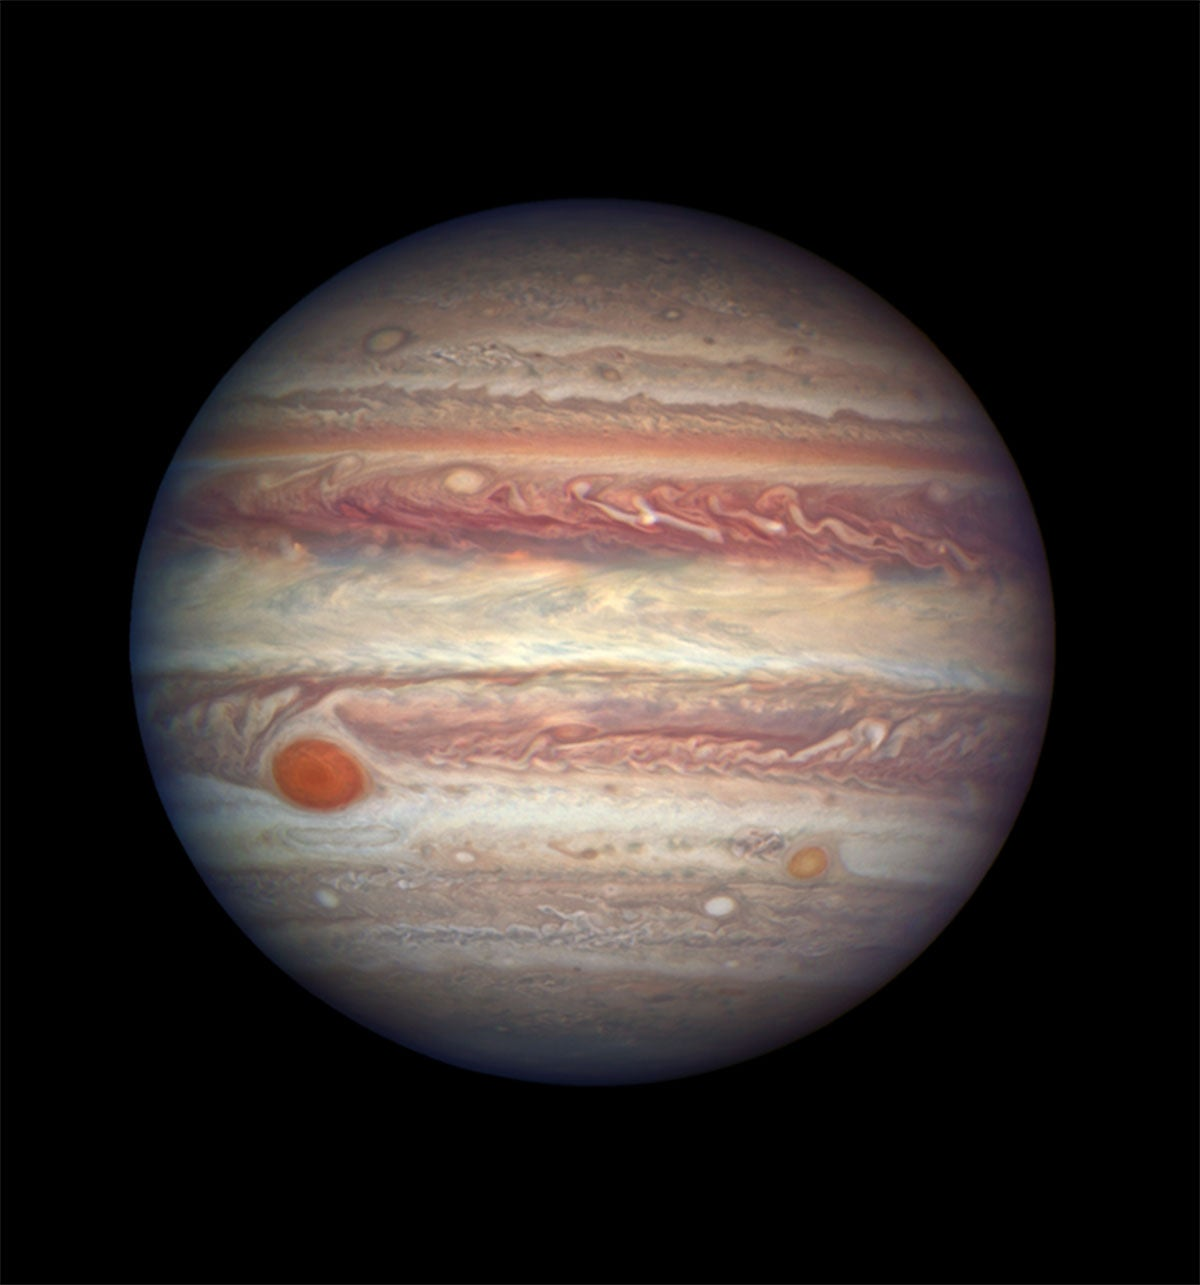 Jupiter may be even older than we thought